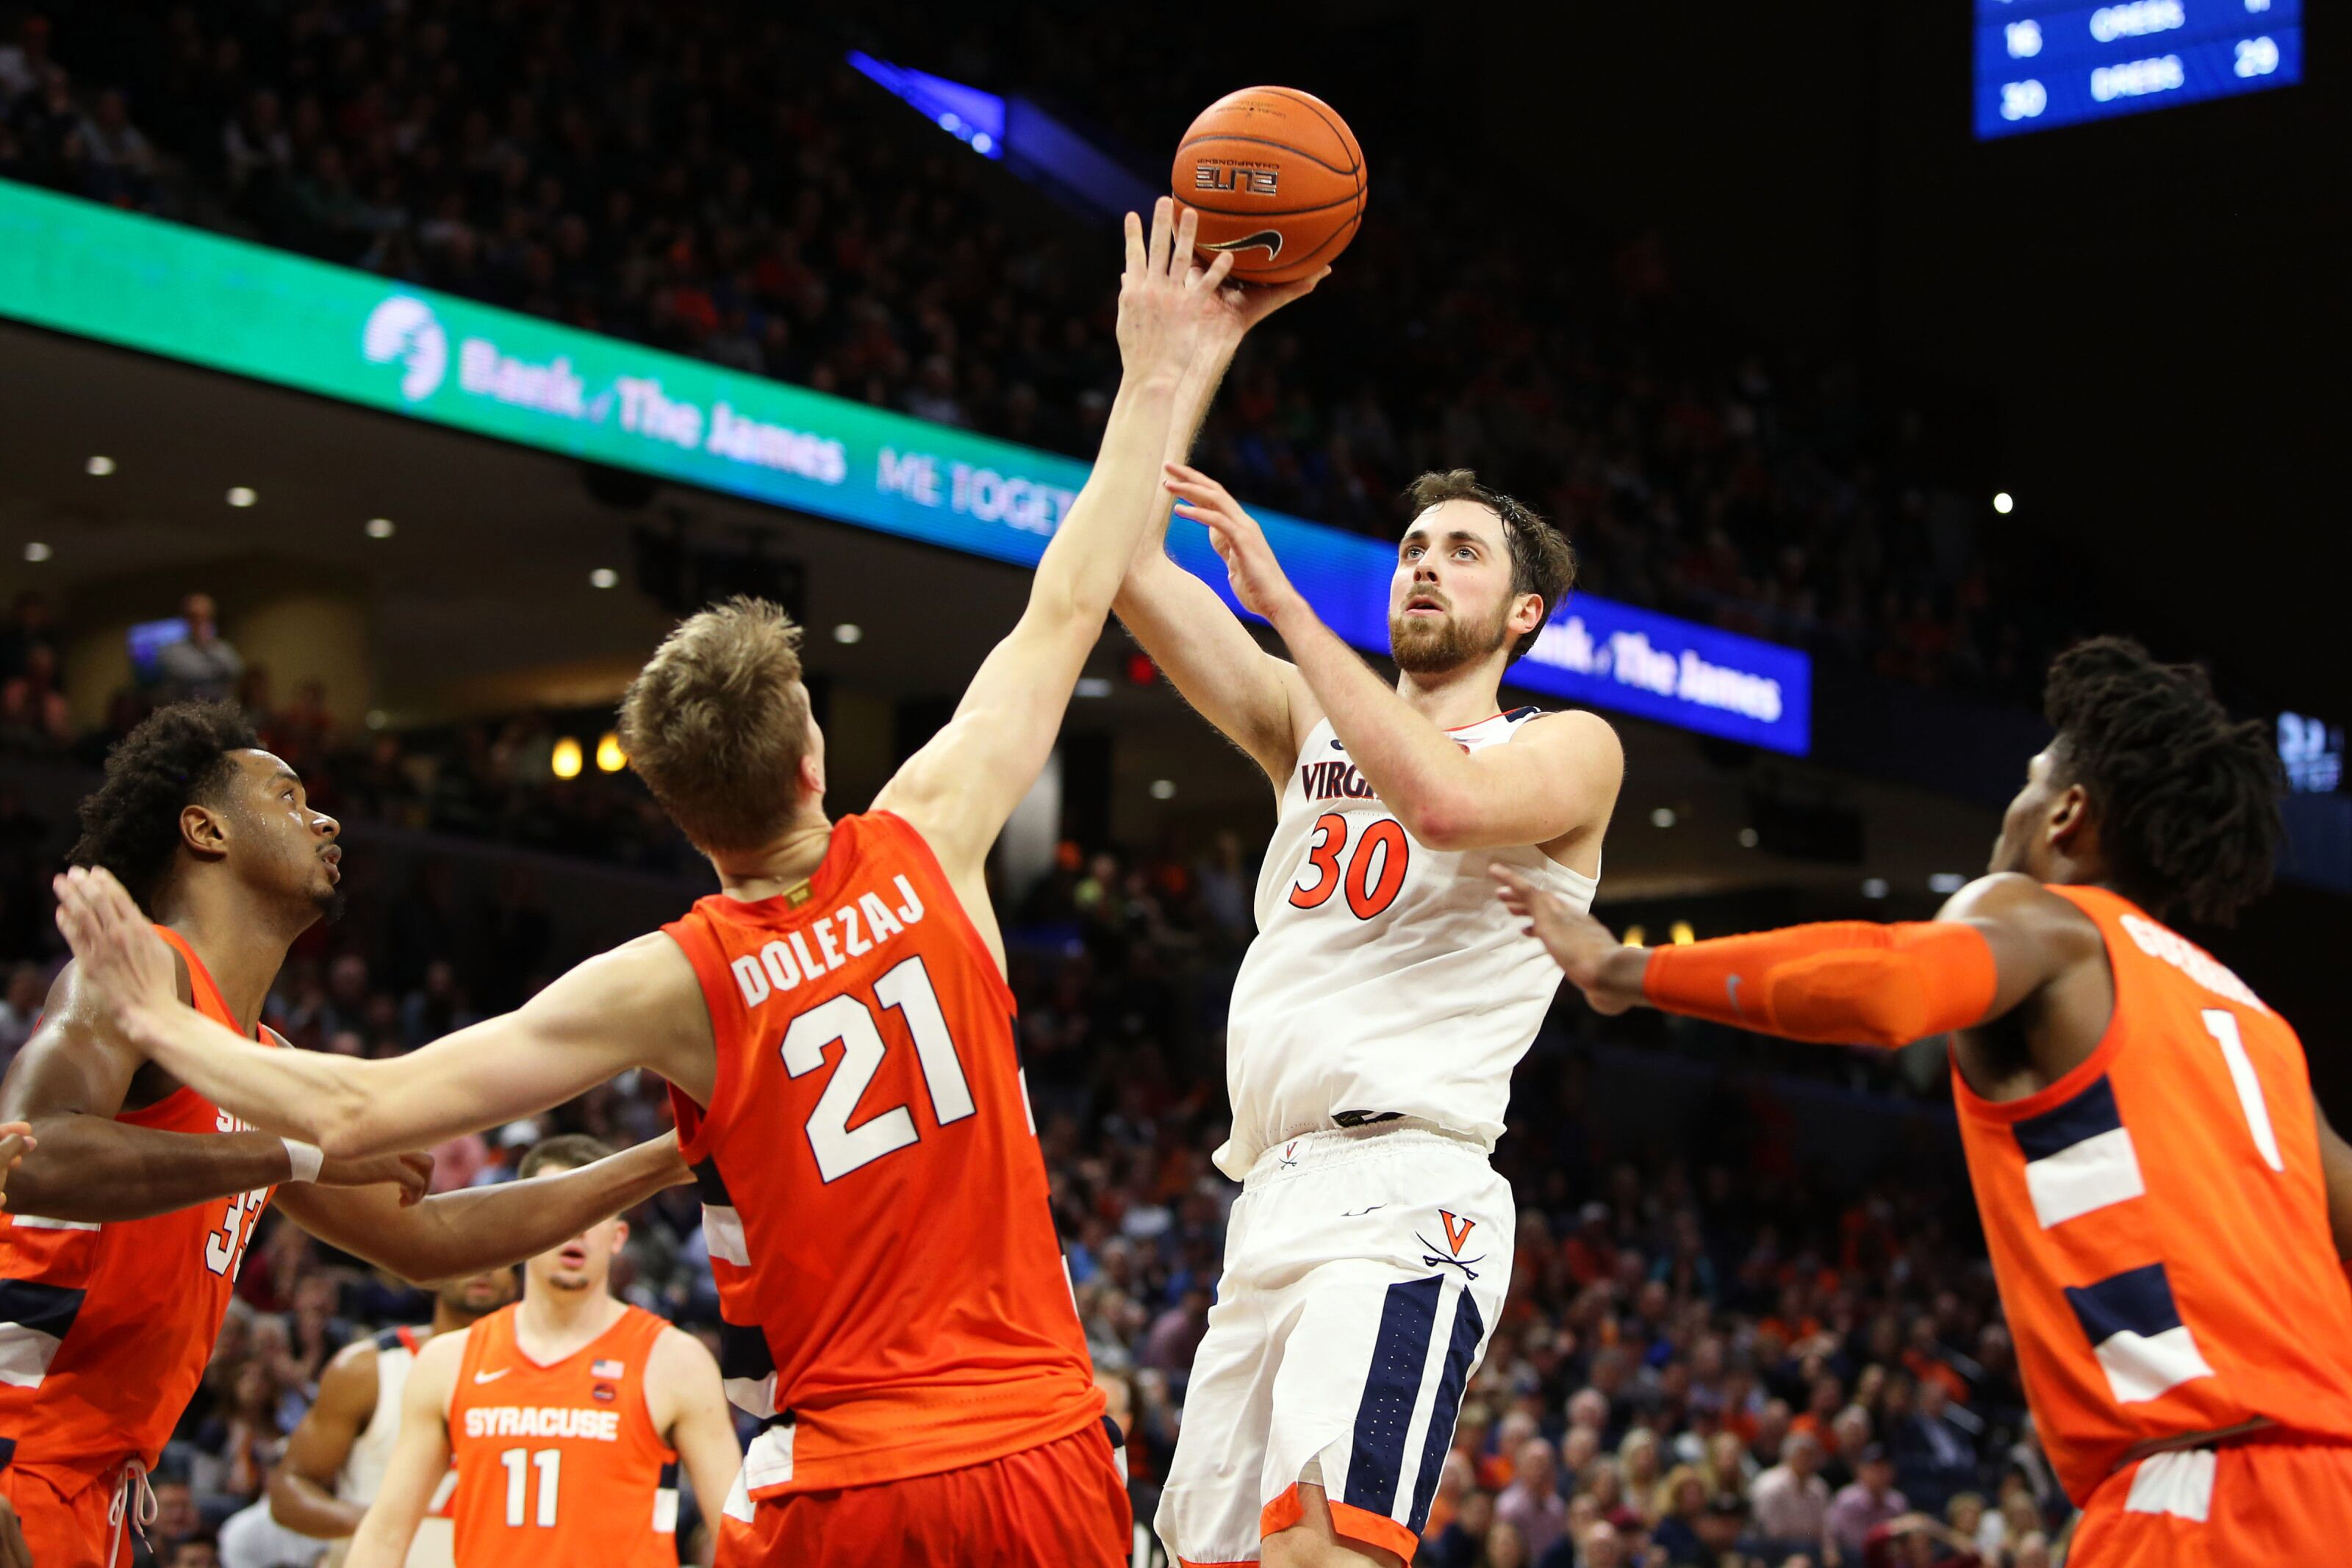 Syracuse Basketball Honing 2 3 Zone Key To March Madness